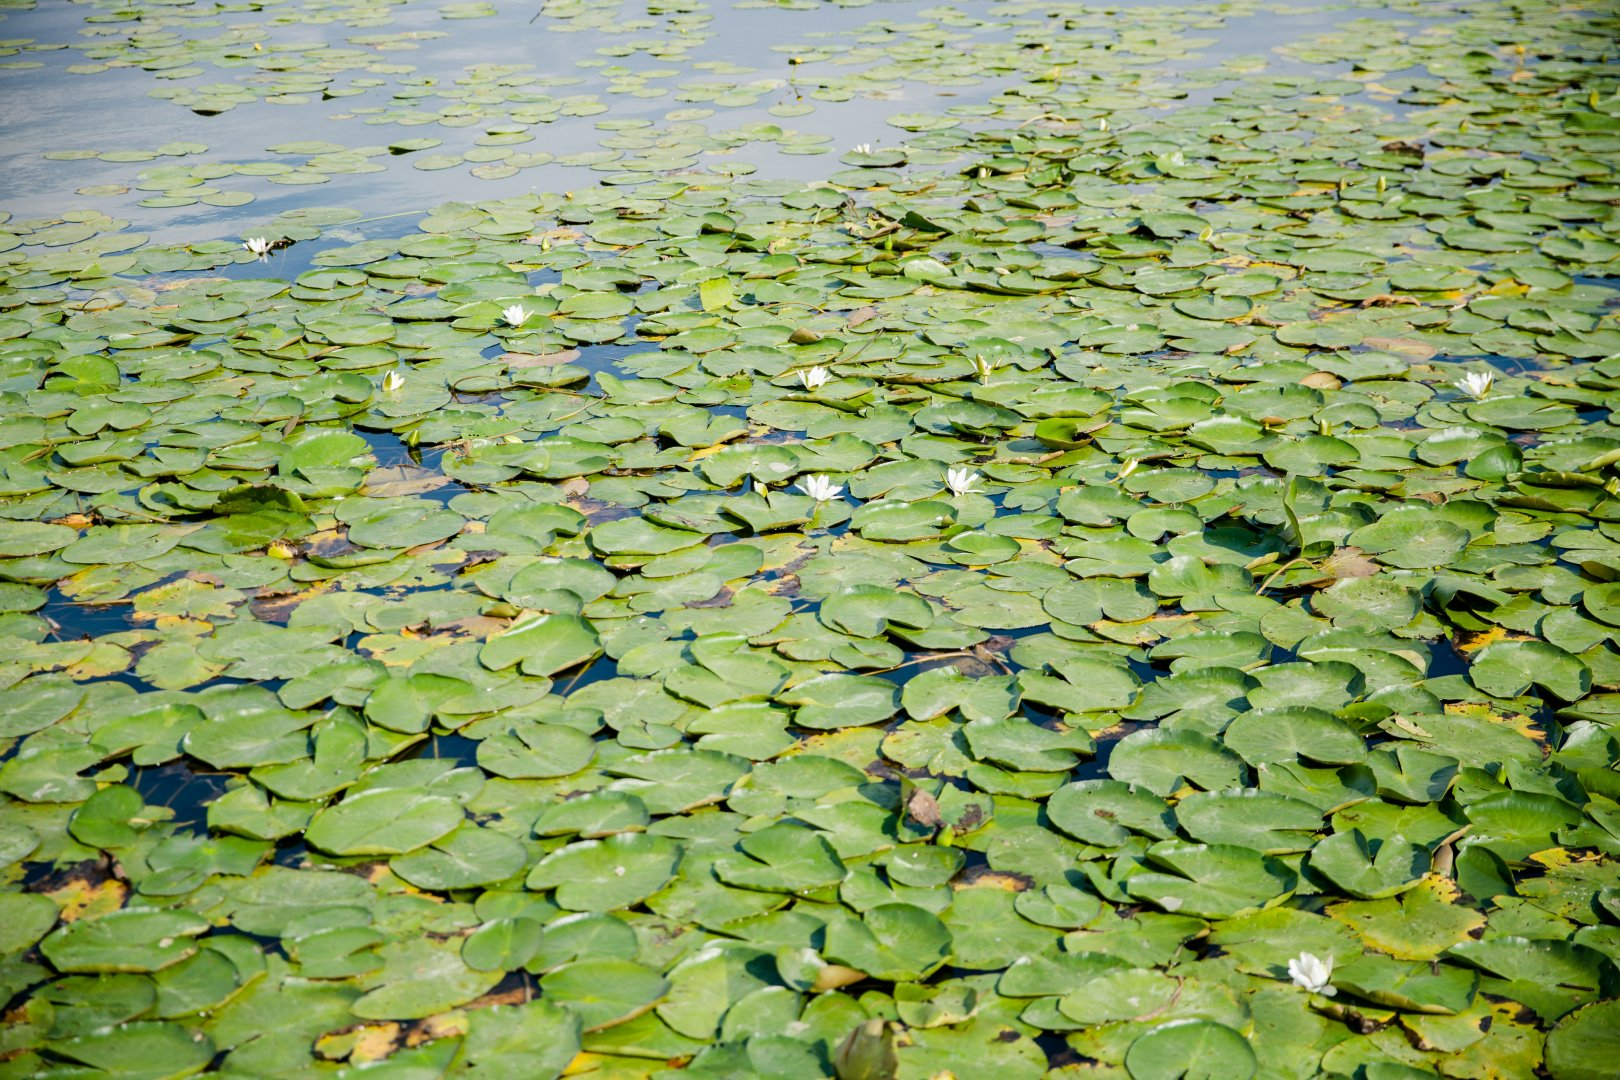 fragrant white water lily Aquatic plant Flower Vegetation Plant water lily Pond Leaf Groundcover Water Annual plant Lotus family Flowering plant Swamp Wetland Herb Water caltrop